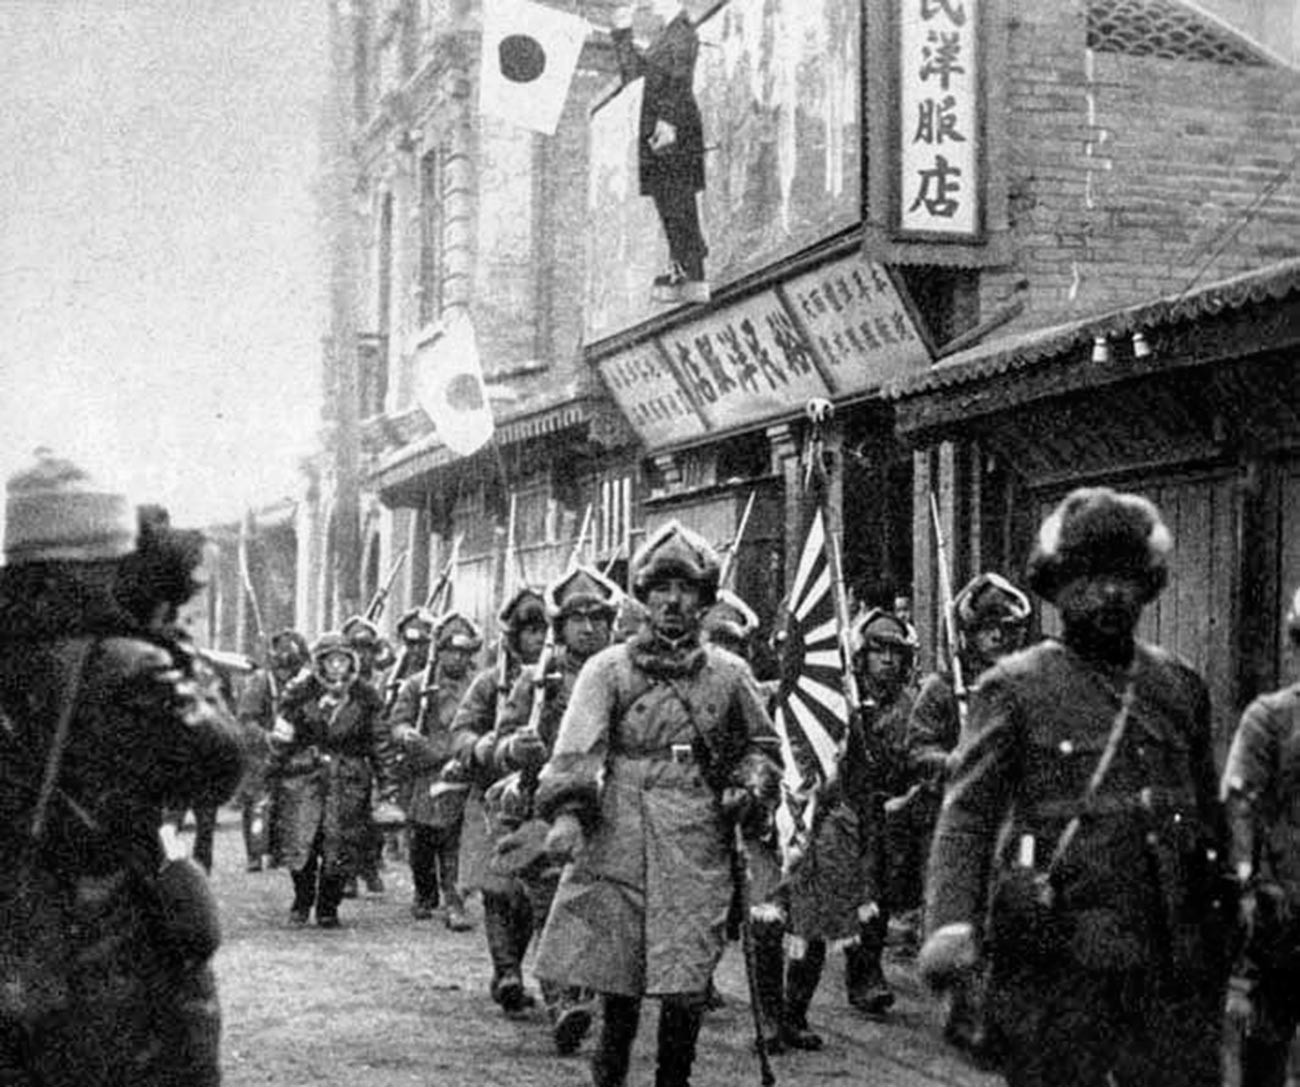 Japanese troops entering Chinchow.